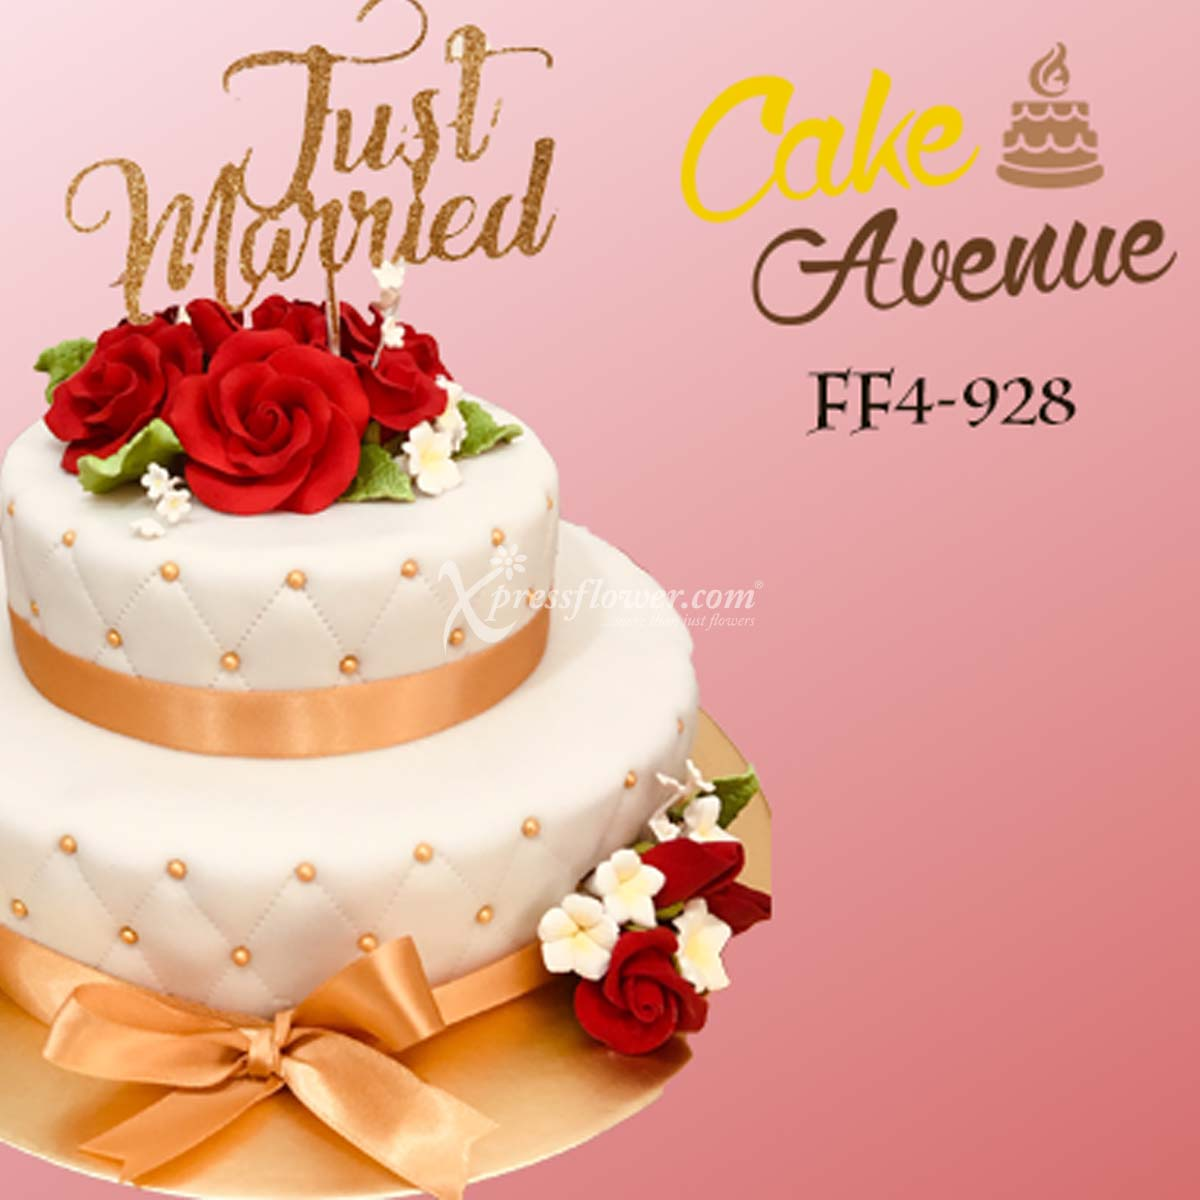 Red Roses - 2 Tier (Cake Avenue)